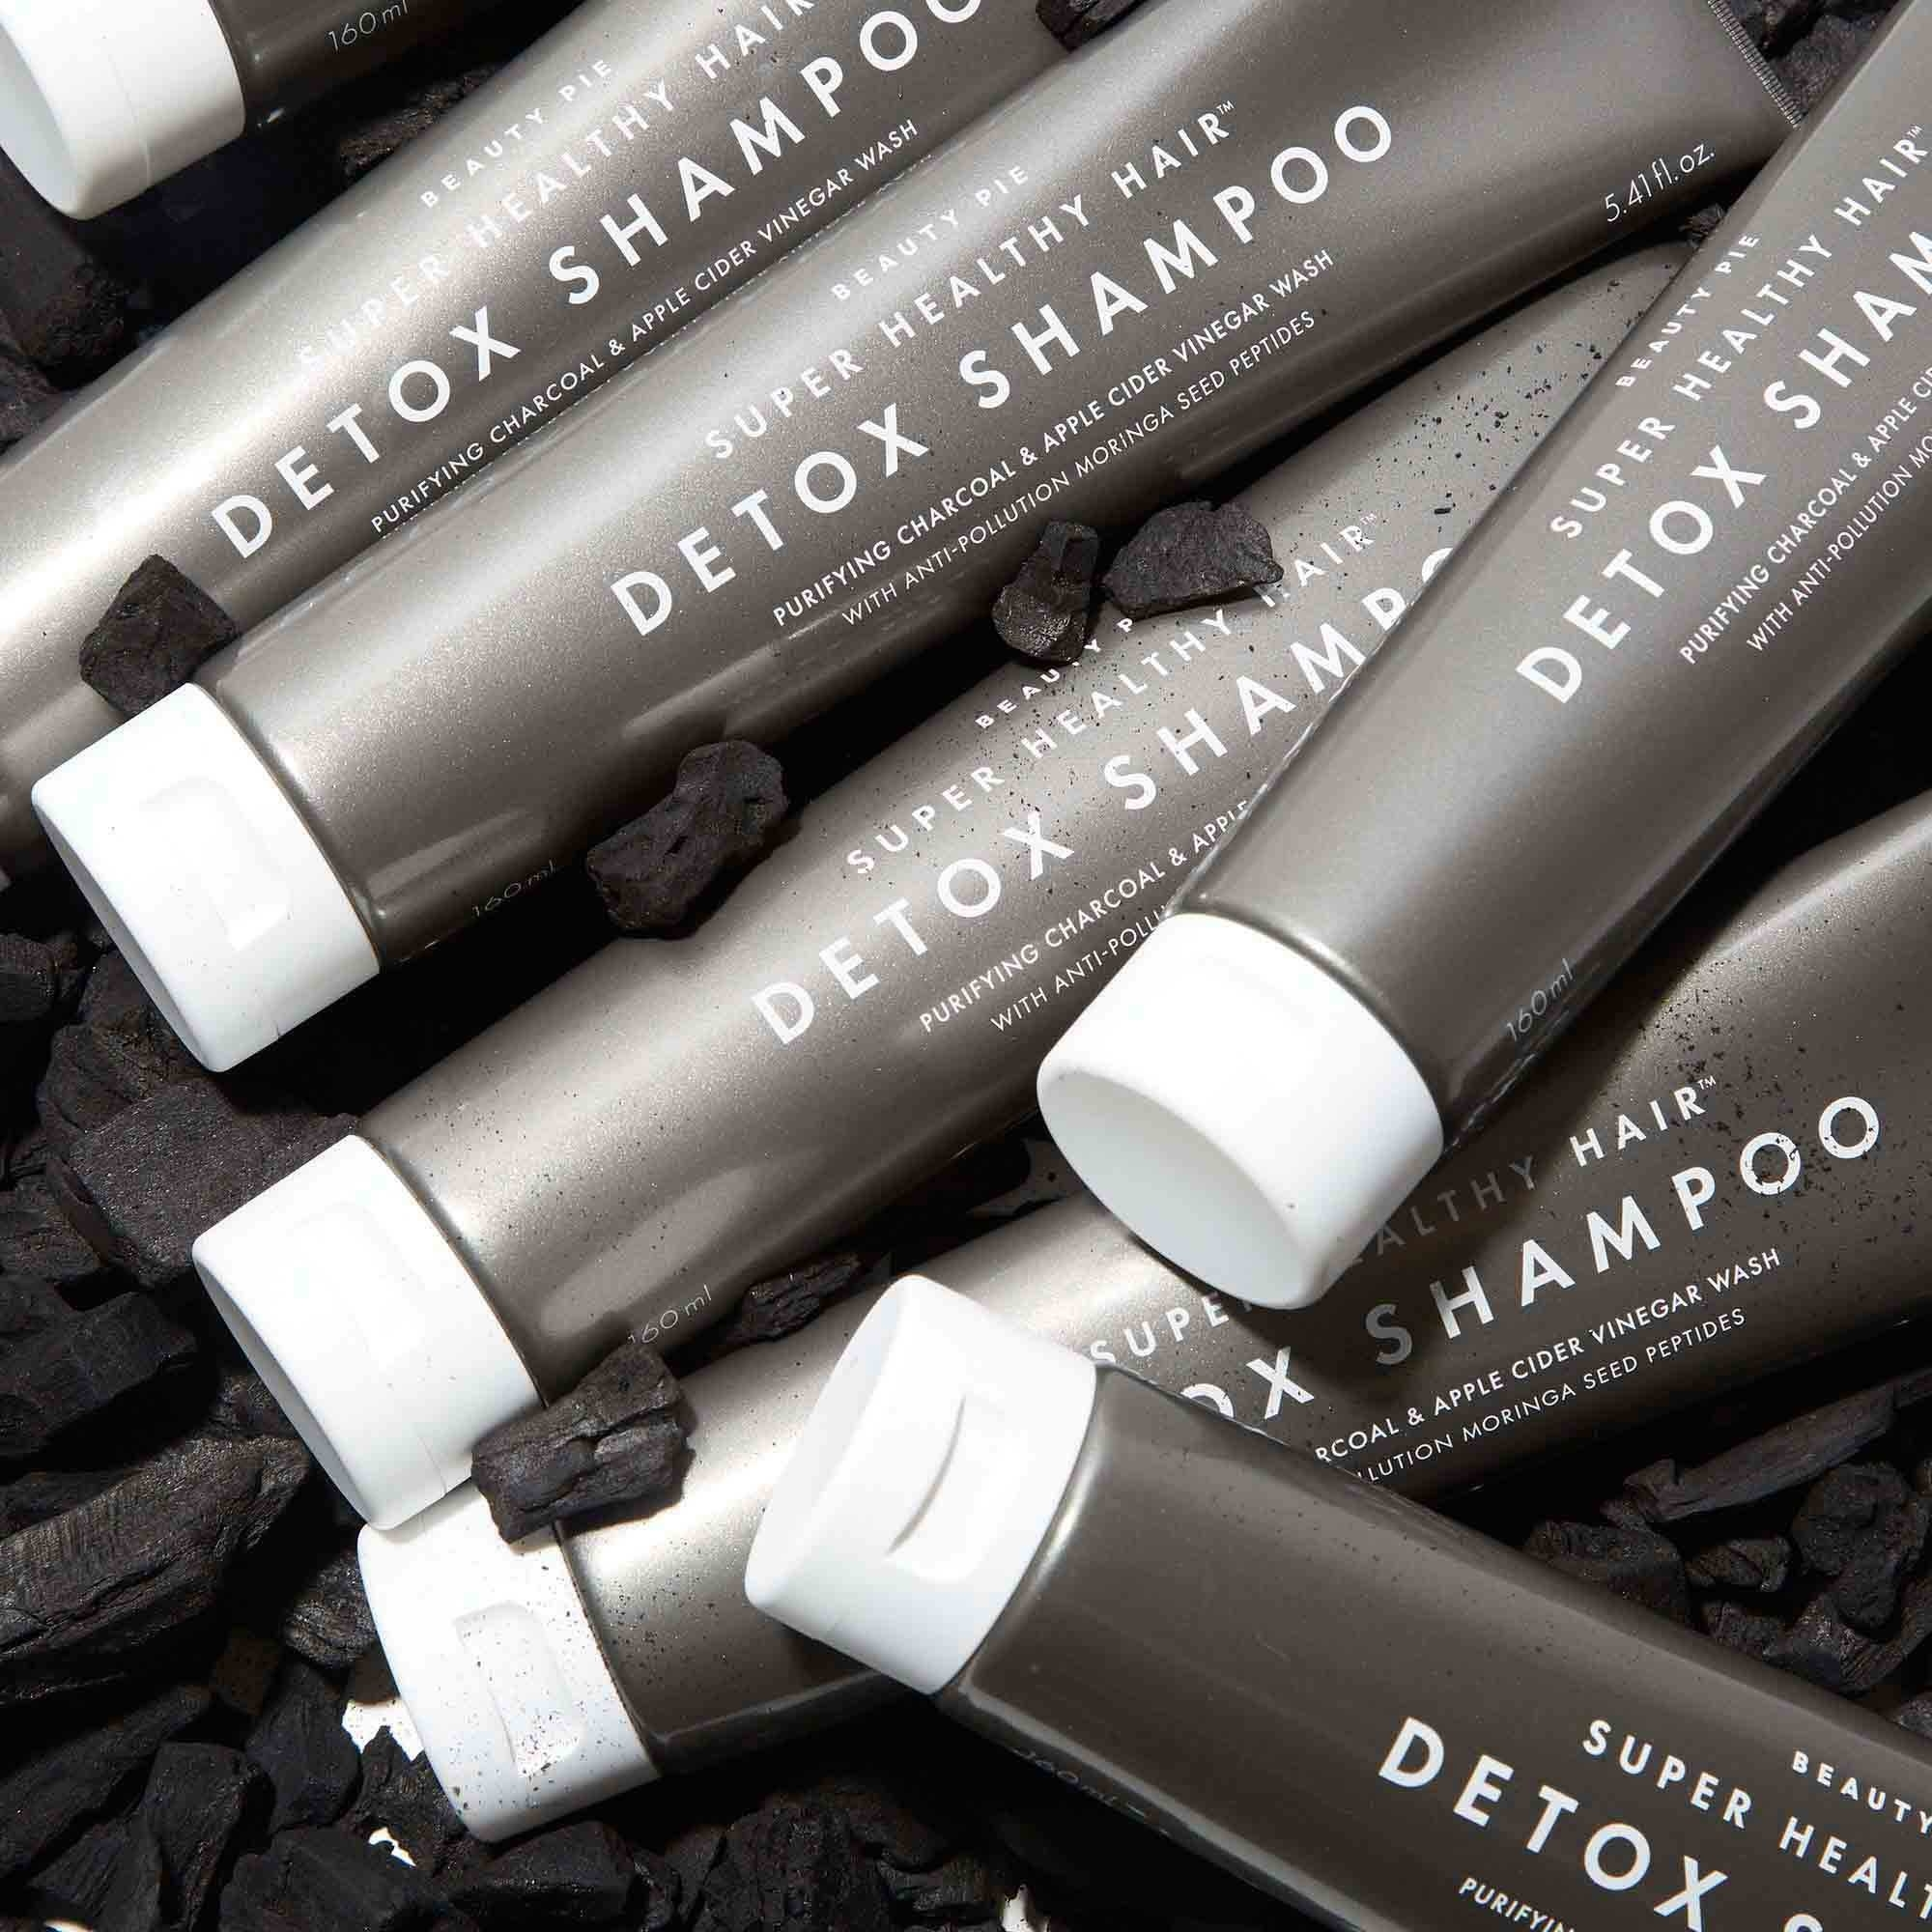 bottles of their detox shampoo styled on bed of charcoal